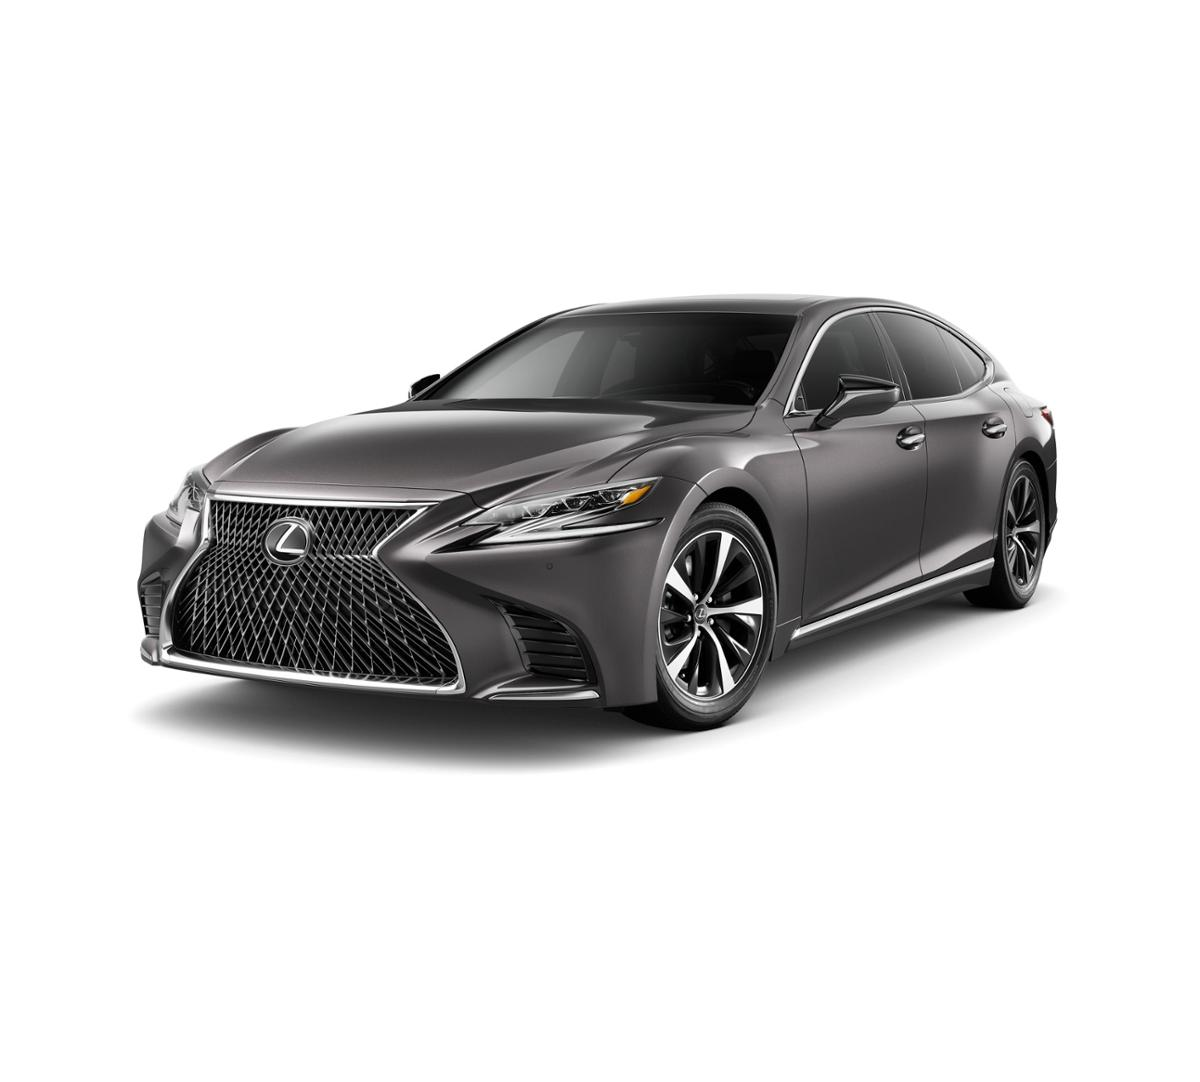 2018 Lexus LS 500 Vehicle Photo in Santa Barbara, CA 93105